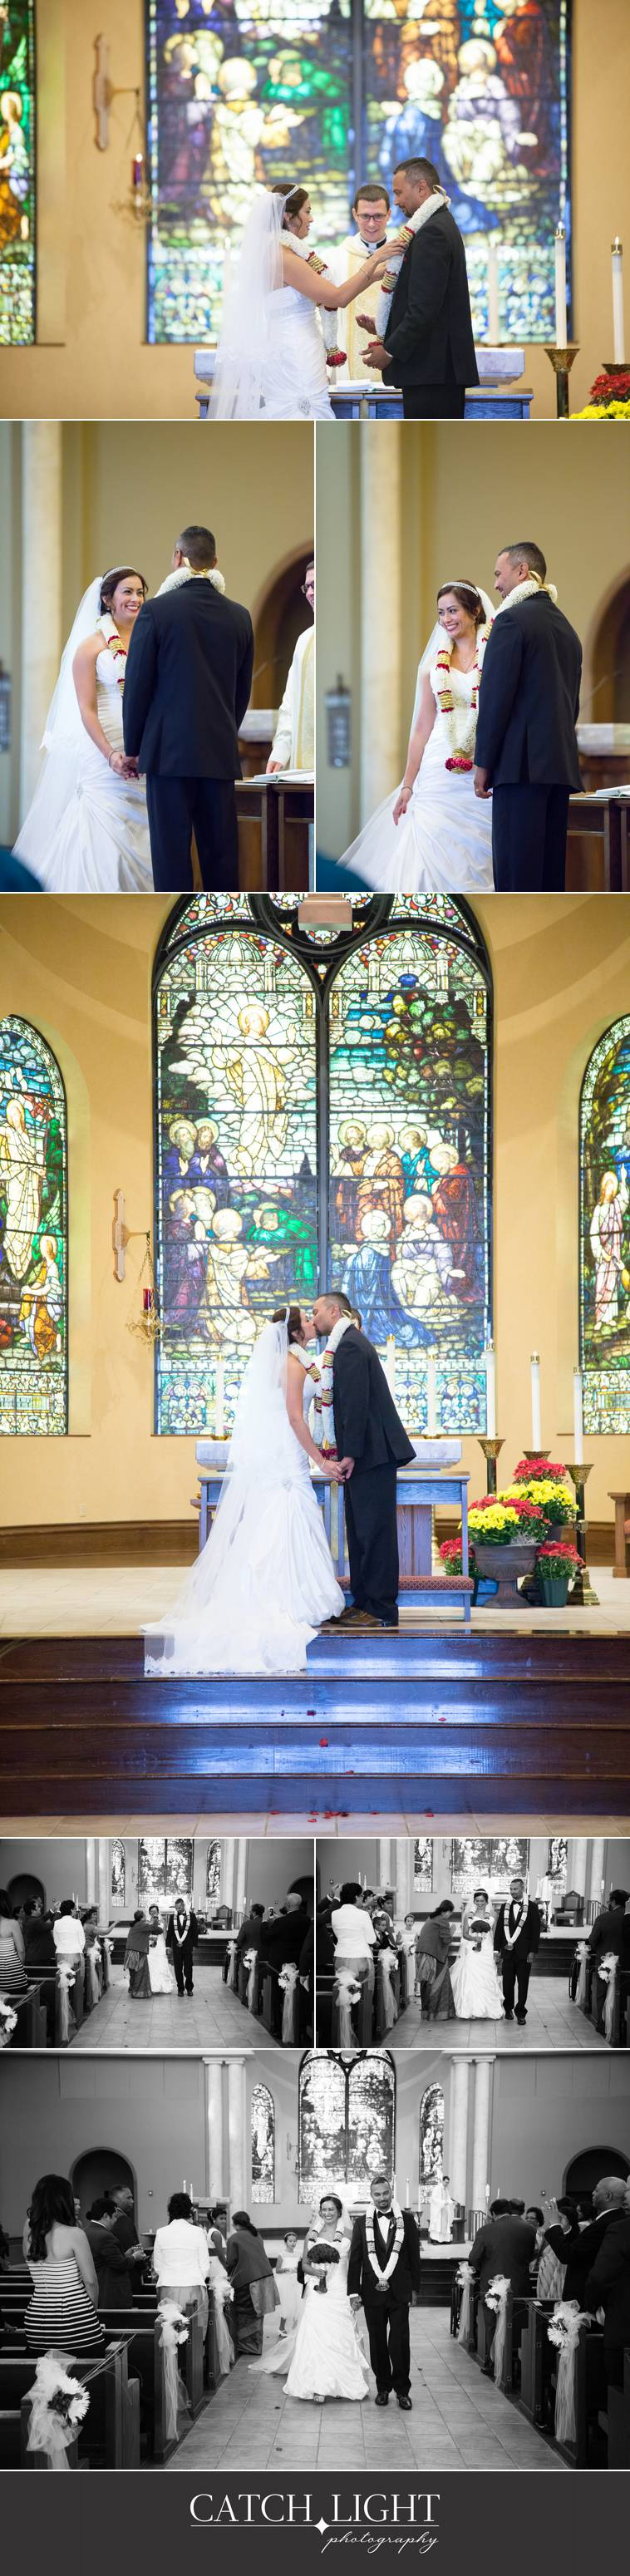 kansas city wedding photography 7